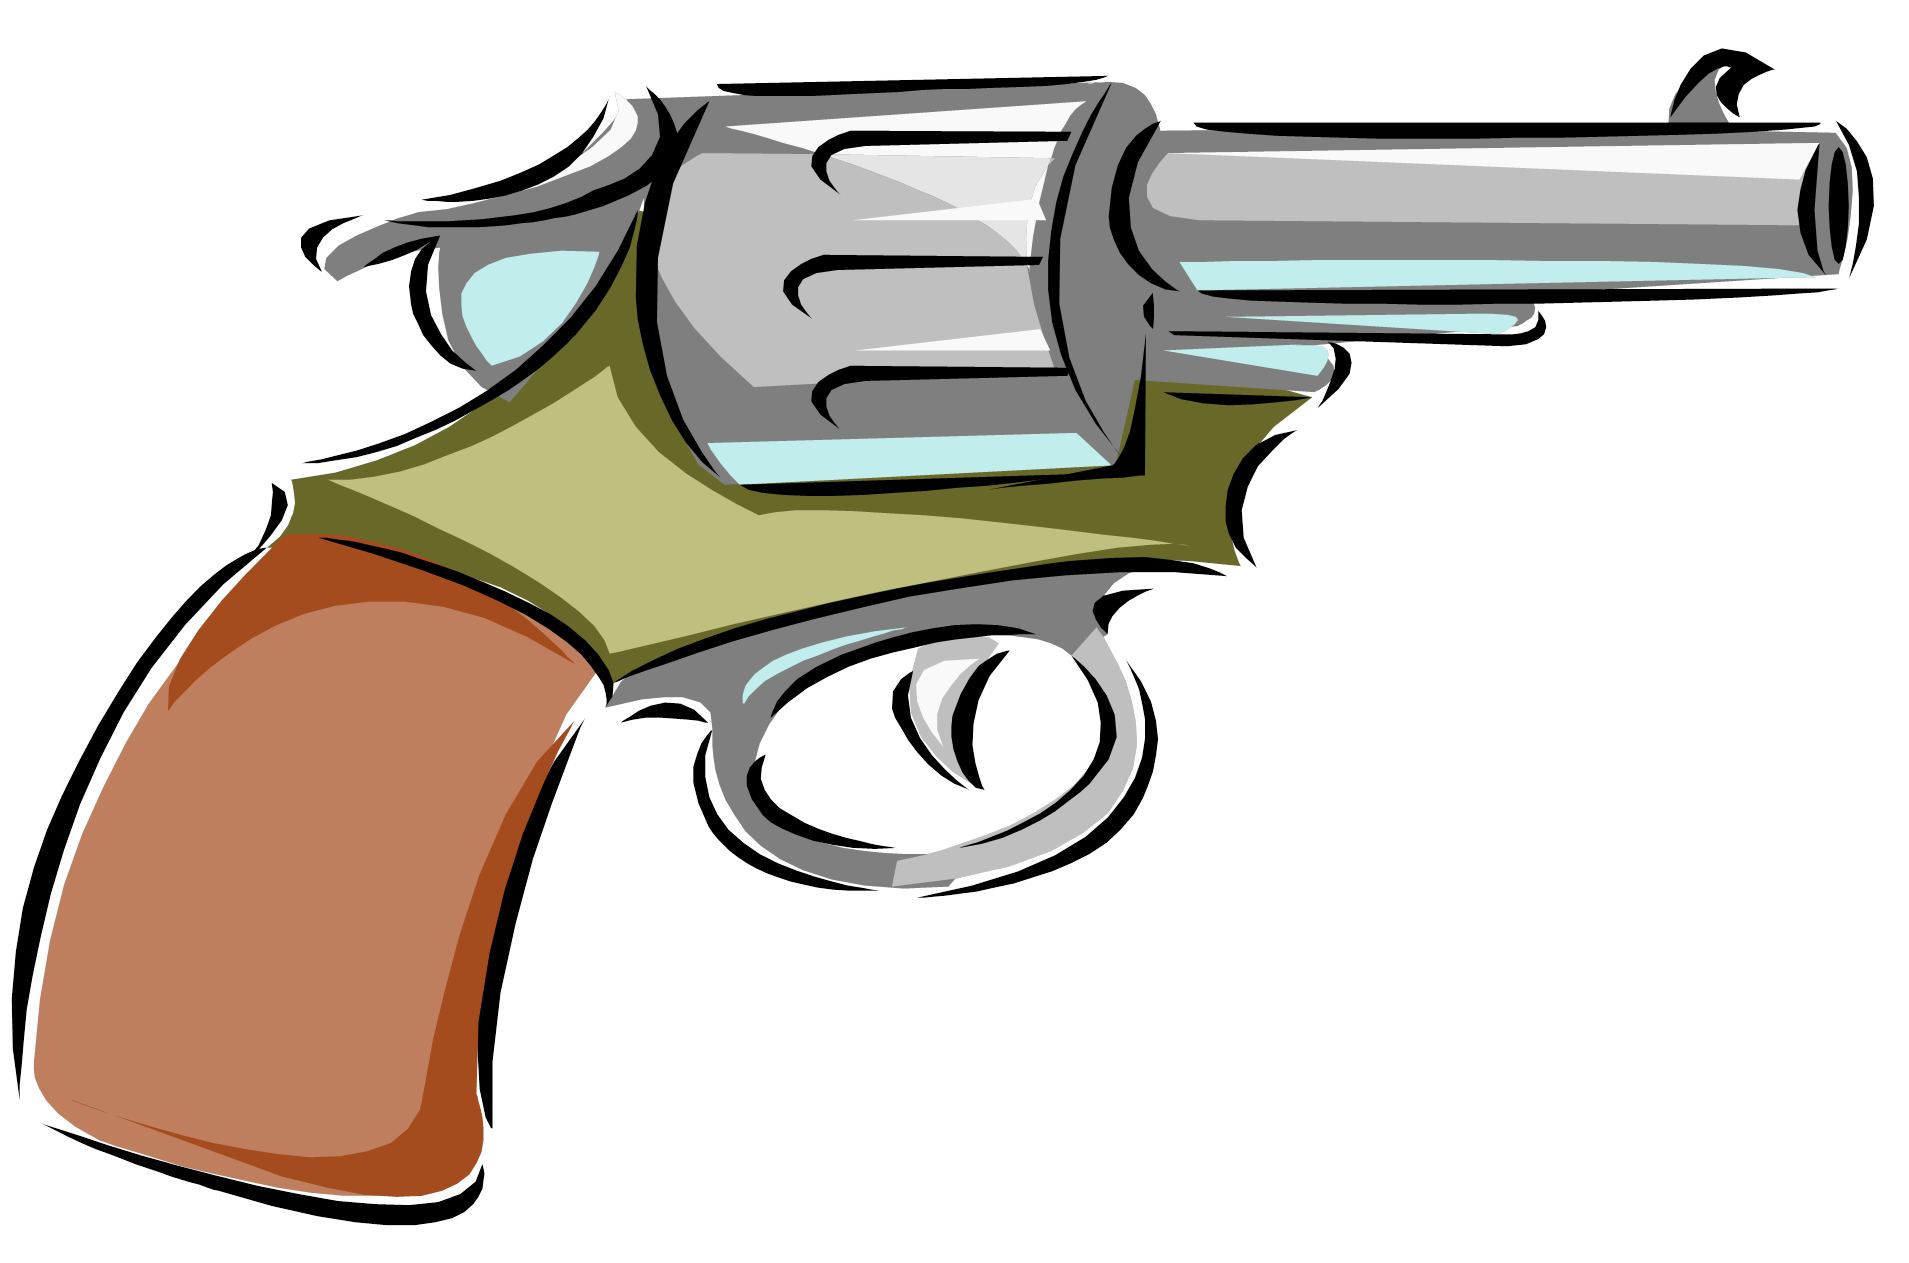 Guns clipart pistol. Gun police free collection